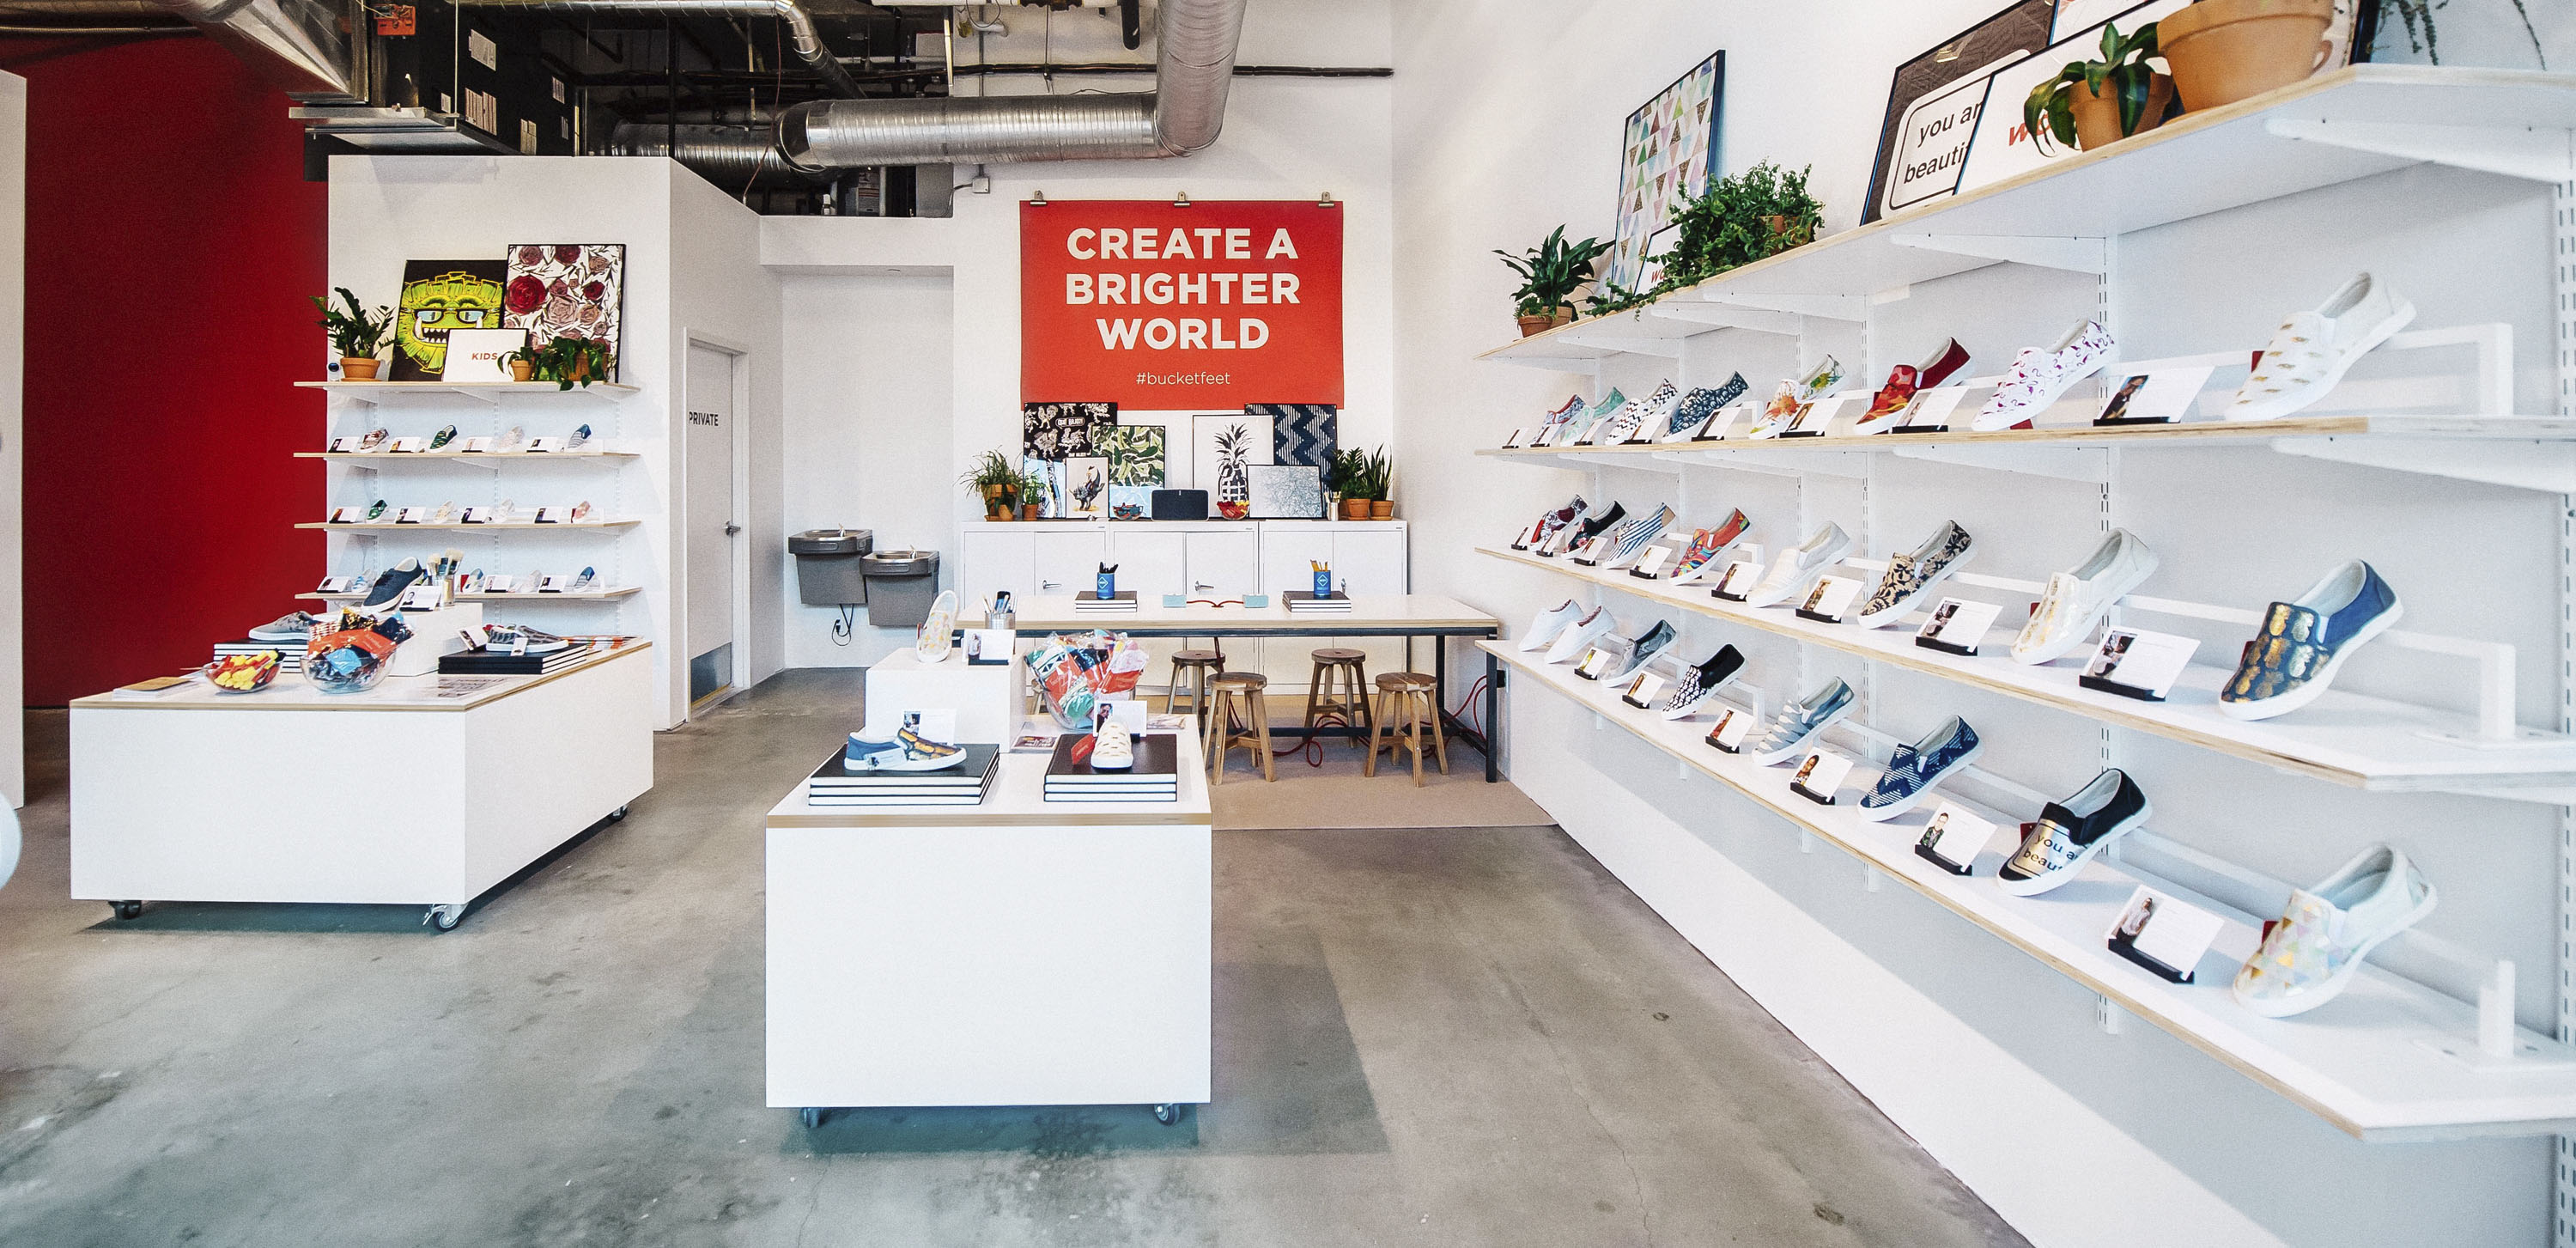 Custom artwork on Bucketfeet shoe store | Fixture Design by Gala Magriña Design